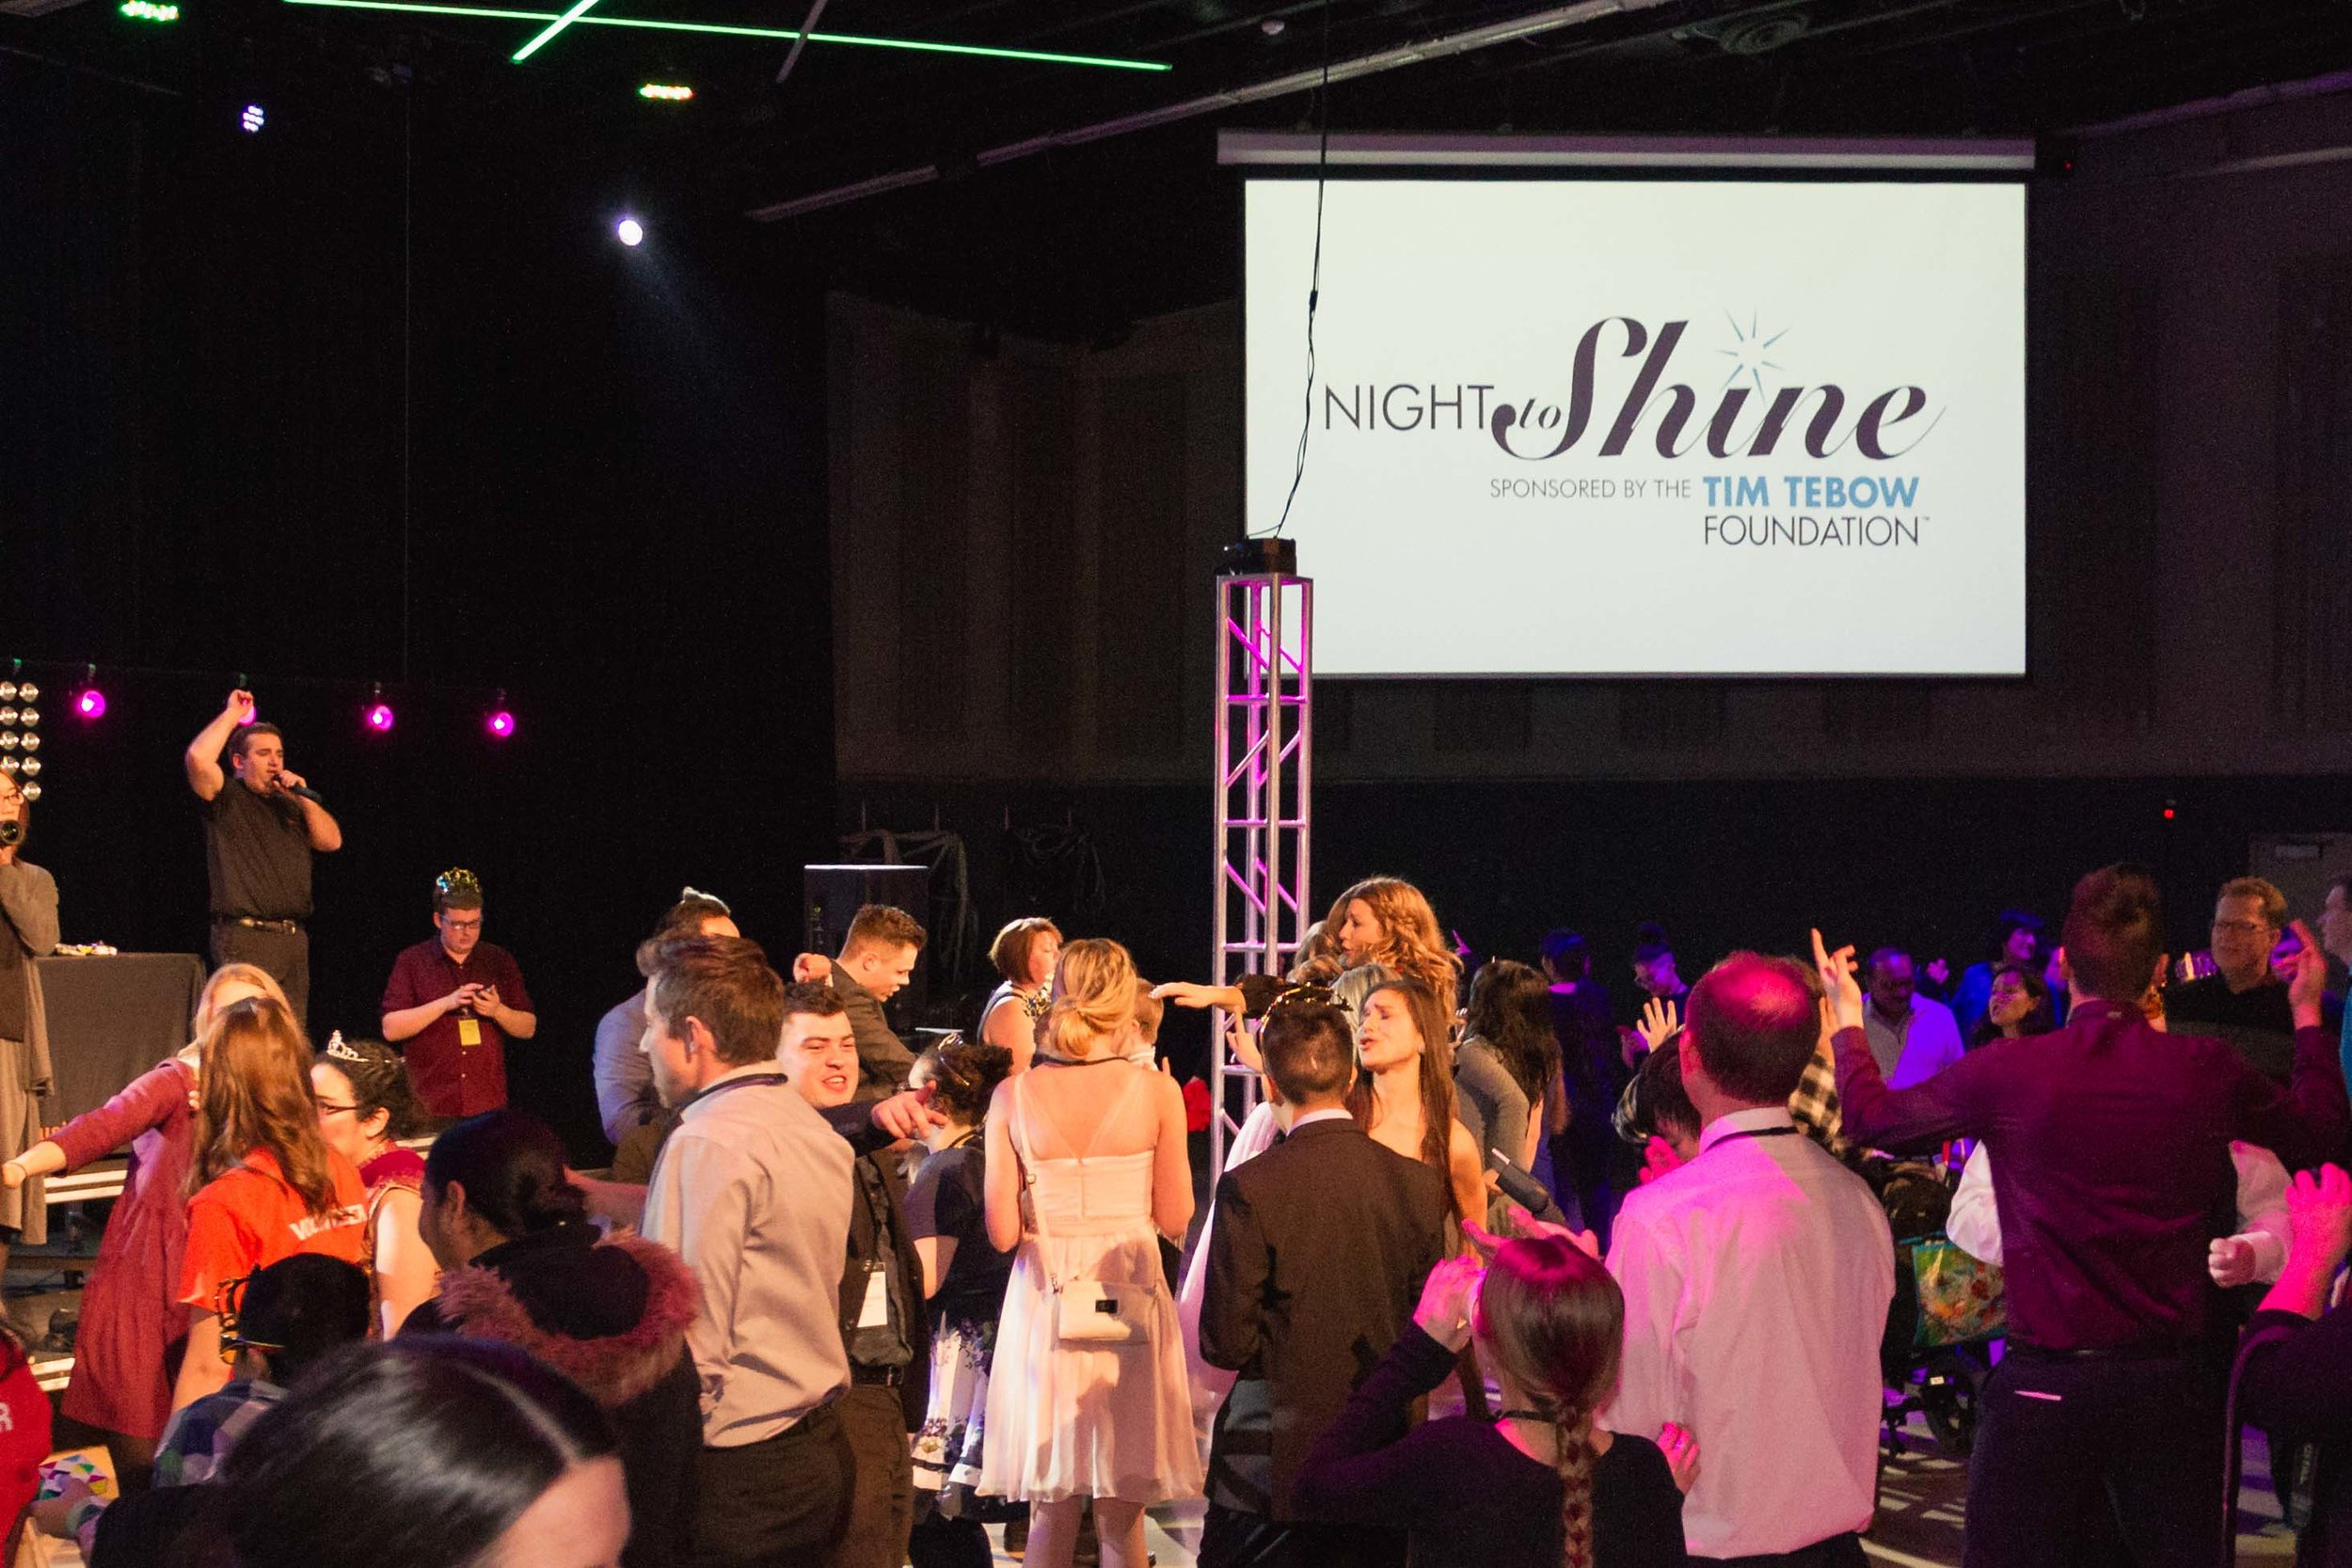 InBetweenDreamsWedding_NightToShine2018_HorizonChurch (401 of 514).jpg